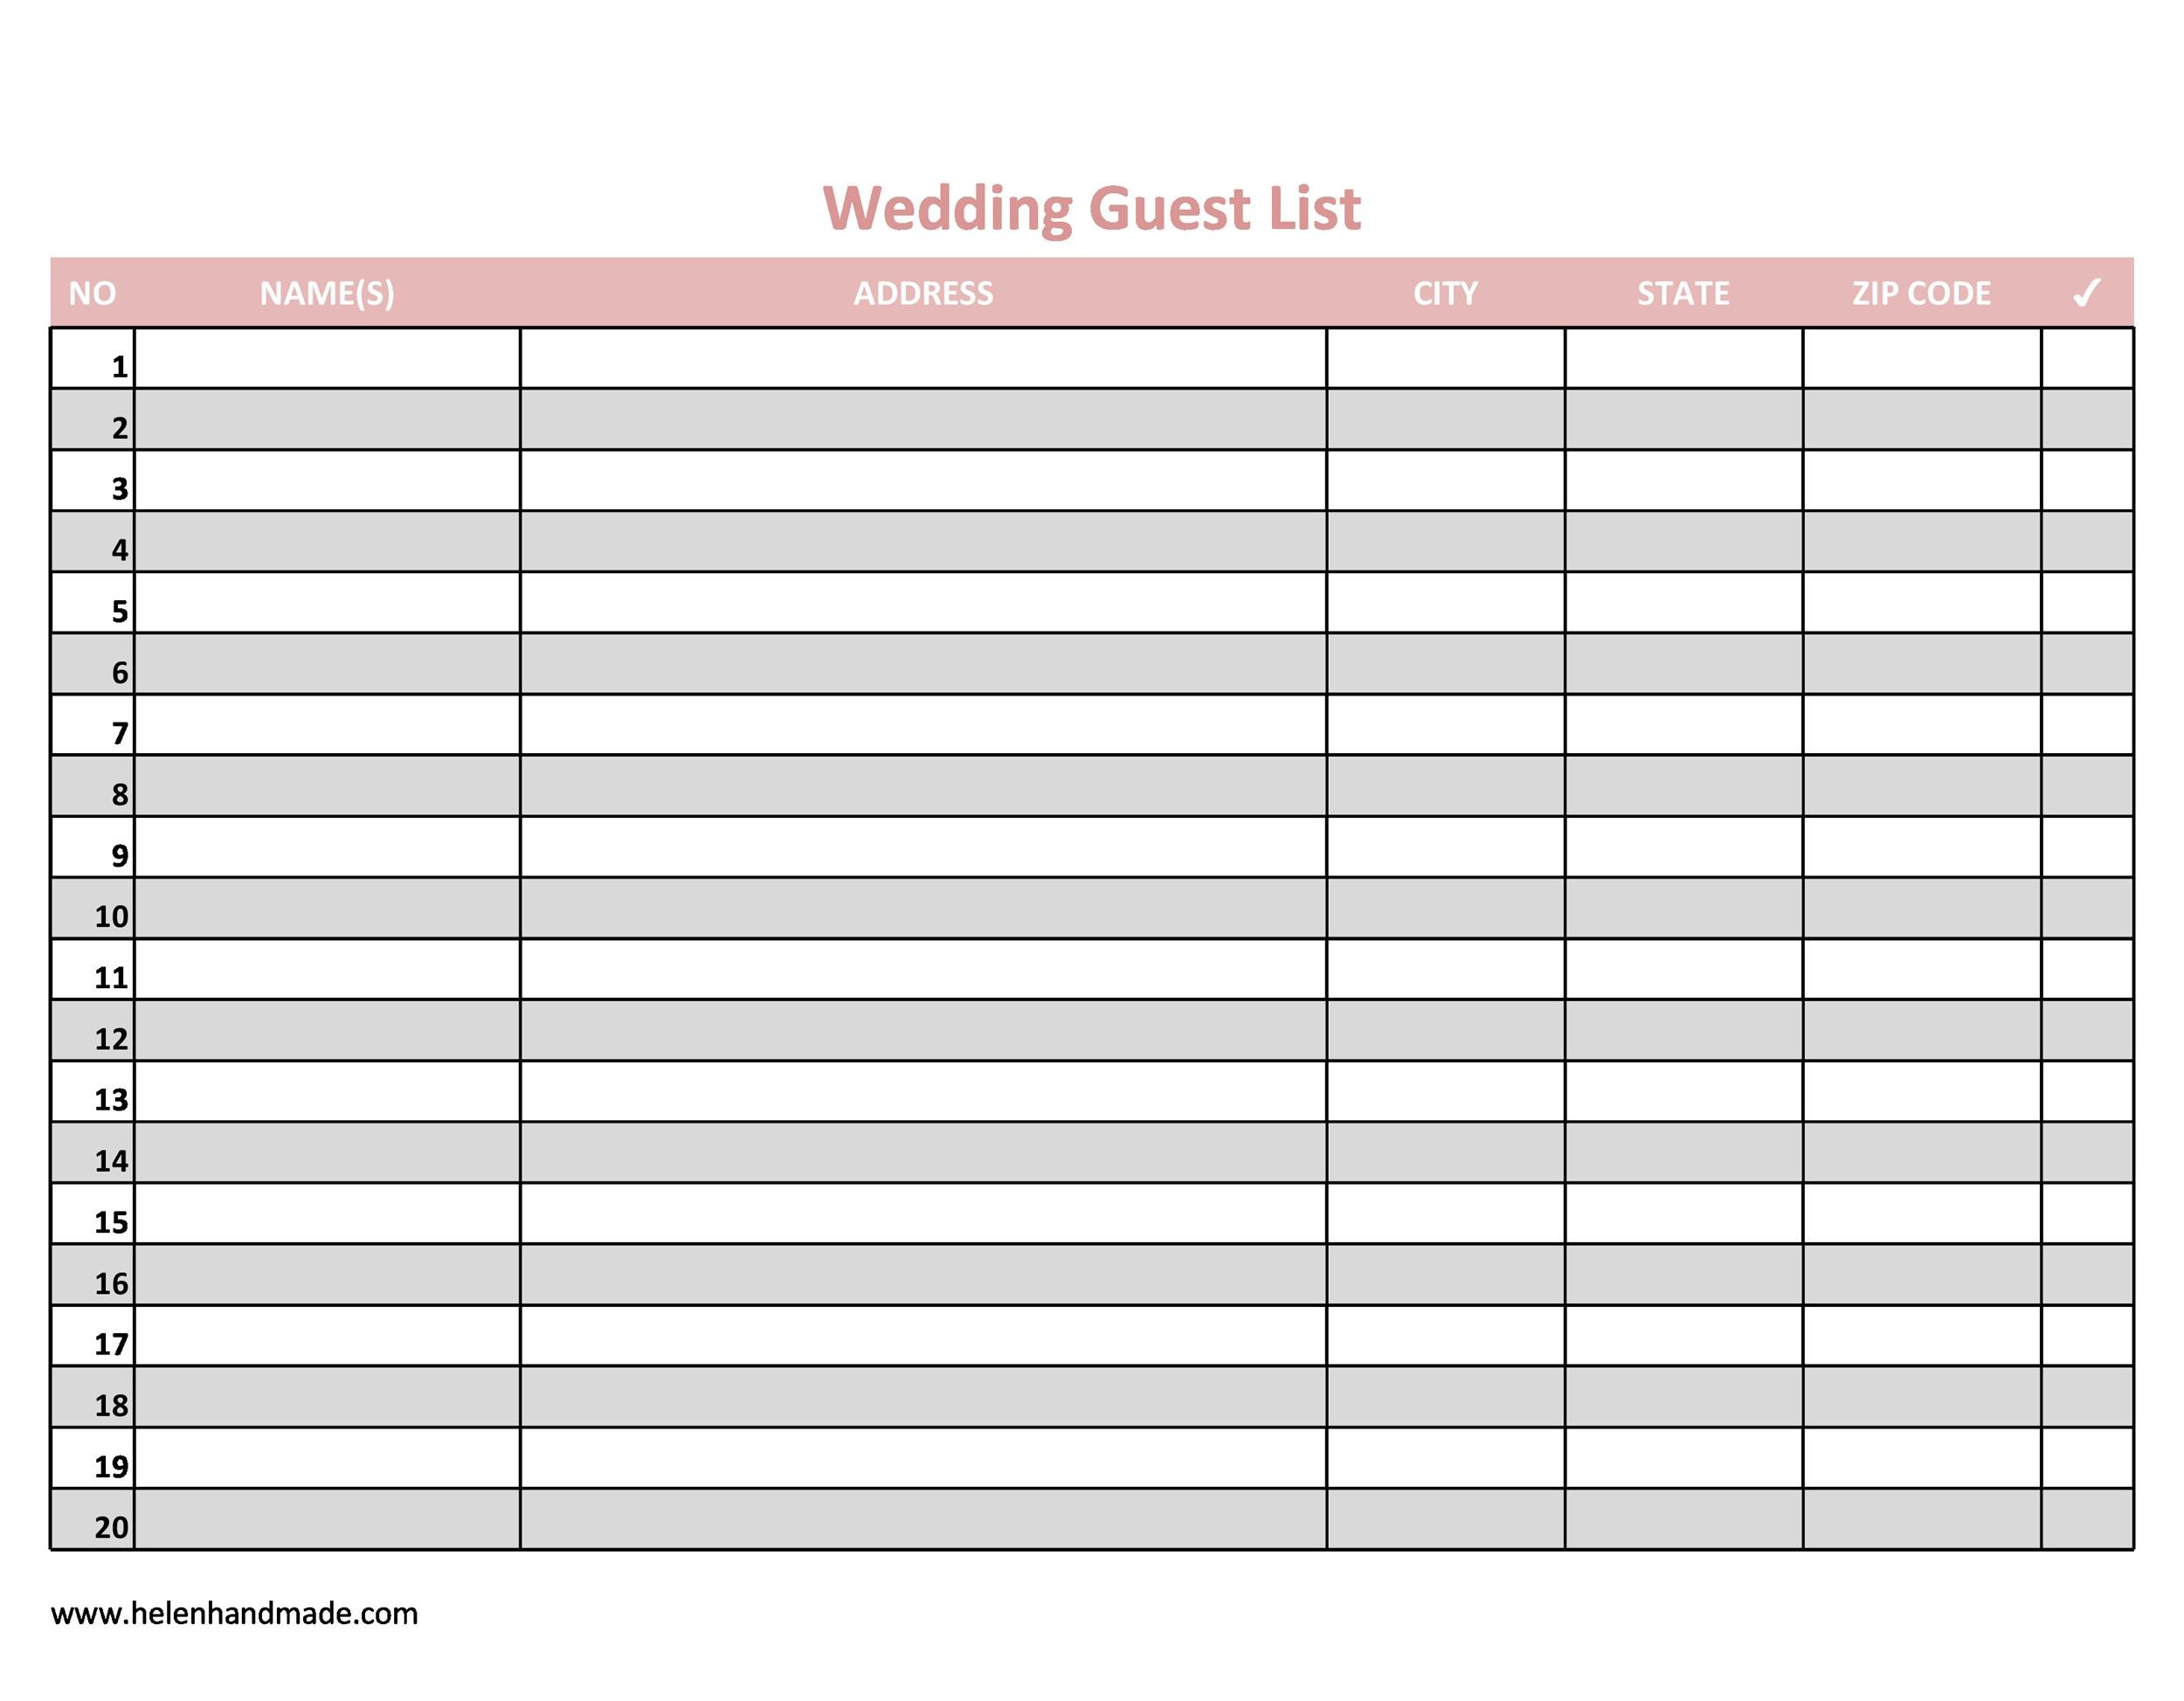 Crush image with wedding guest list printable